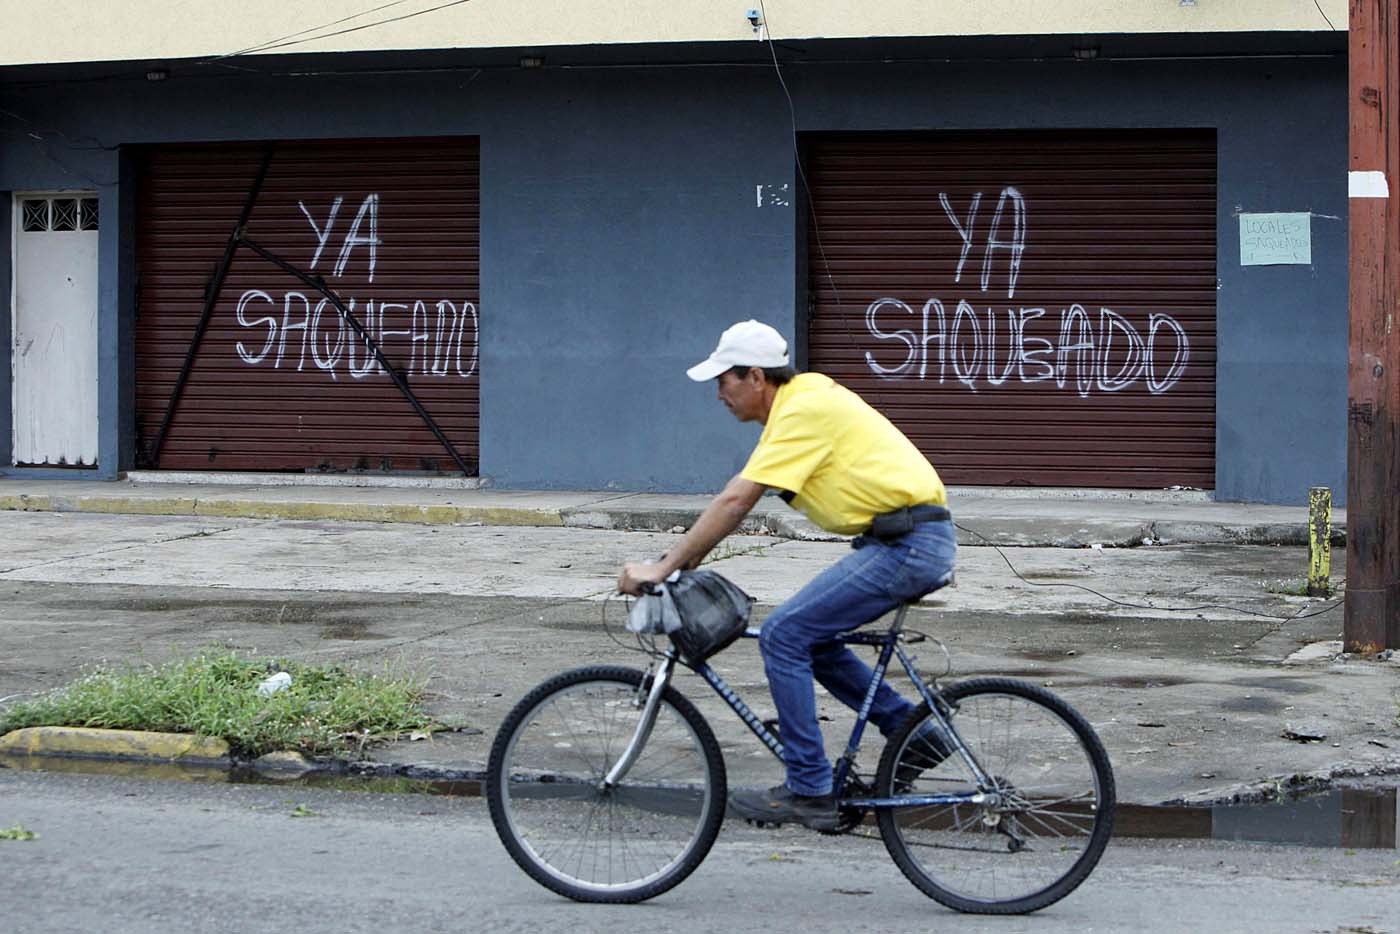 """A man rides a bicycle in front of the gates of a shop that read, """"Already looted"""" in Barinas, Venezuela June 12, 2017. Picture taken June 12, 2017. REUTERS/Carlos Eduardo Ramirez"""